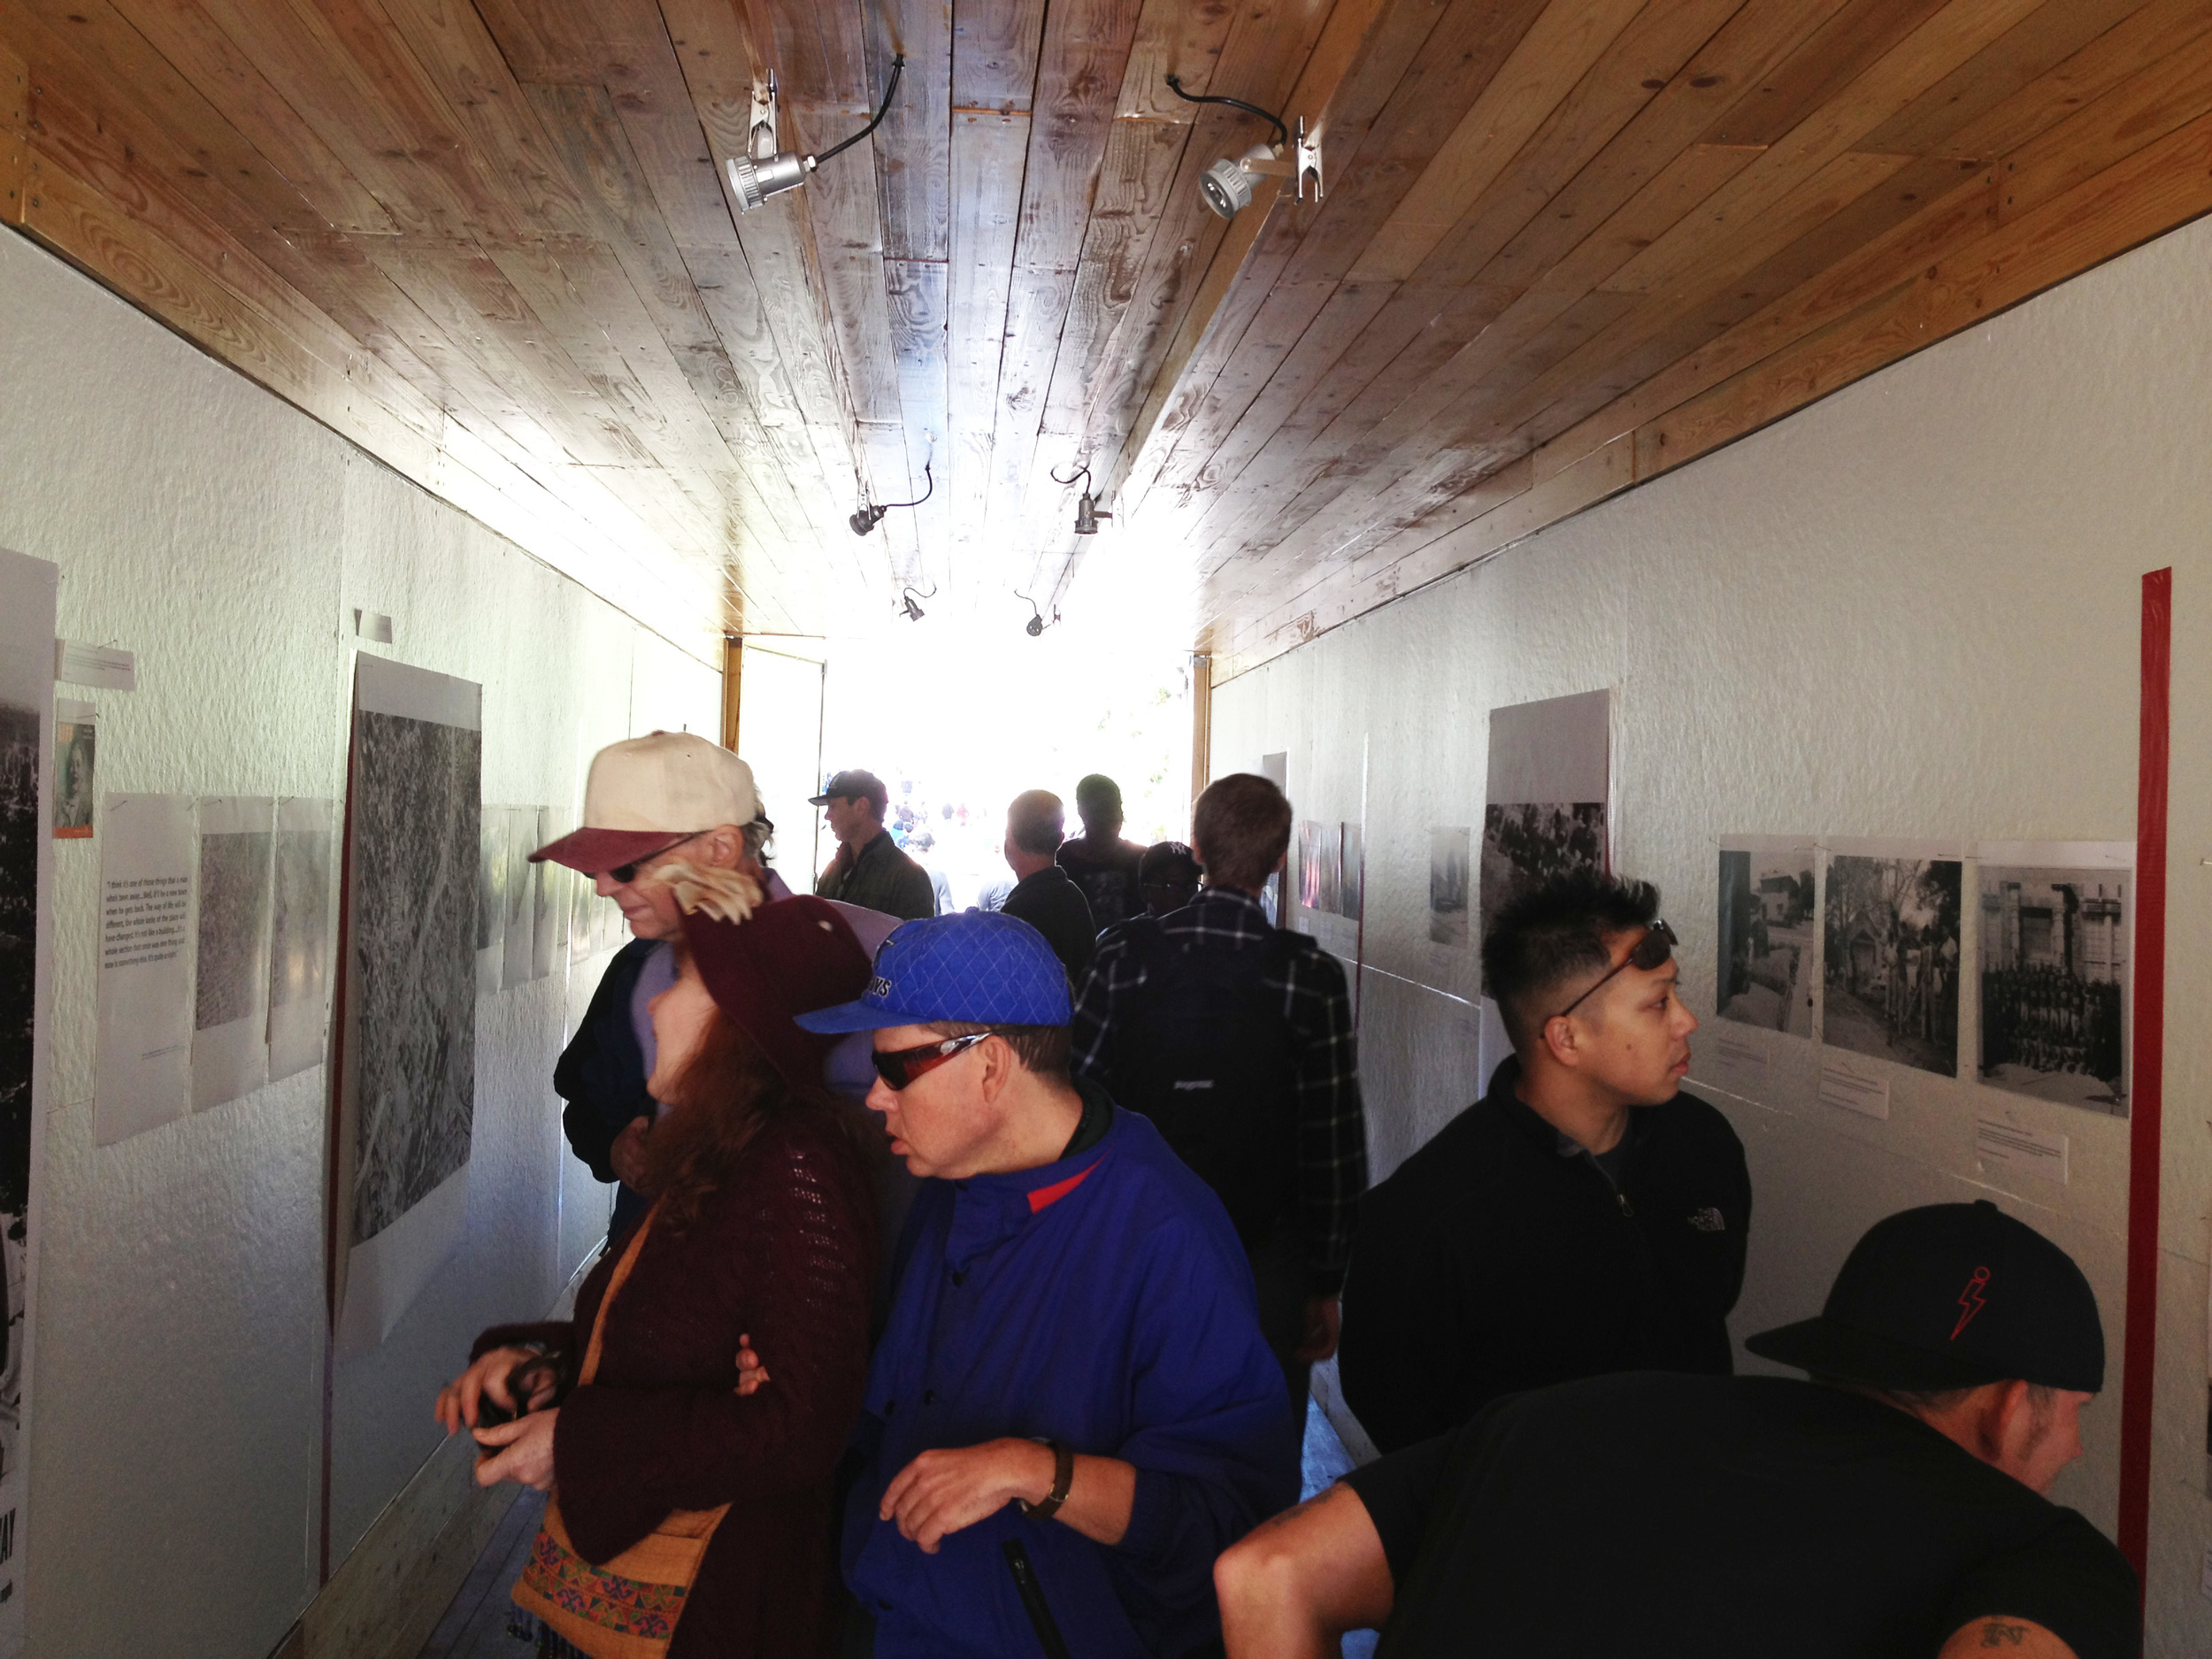 The gallery was regularly filled with visitors